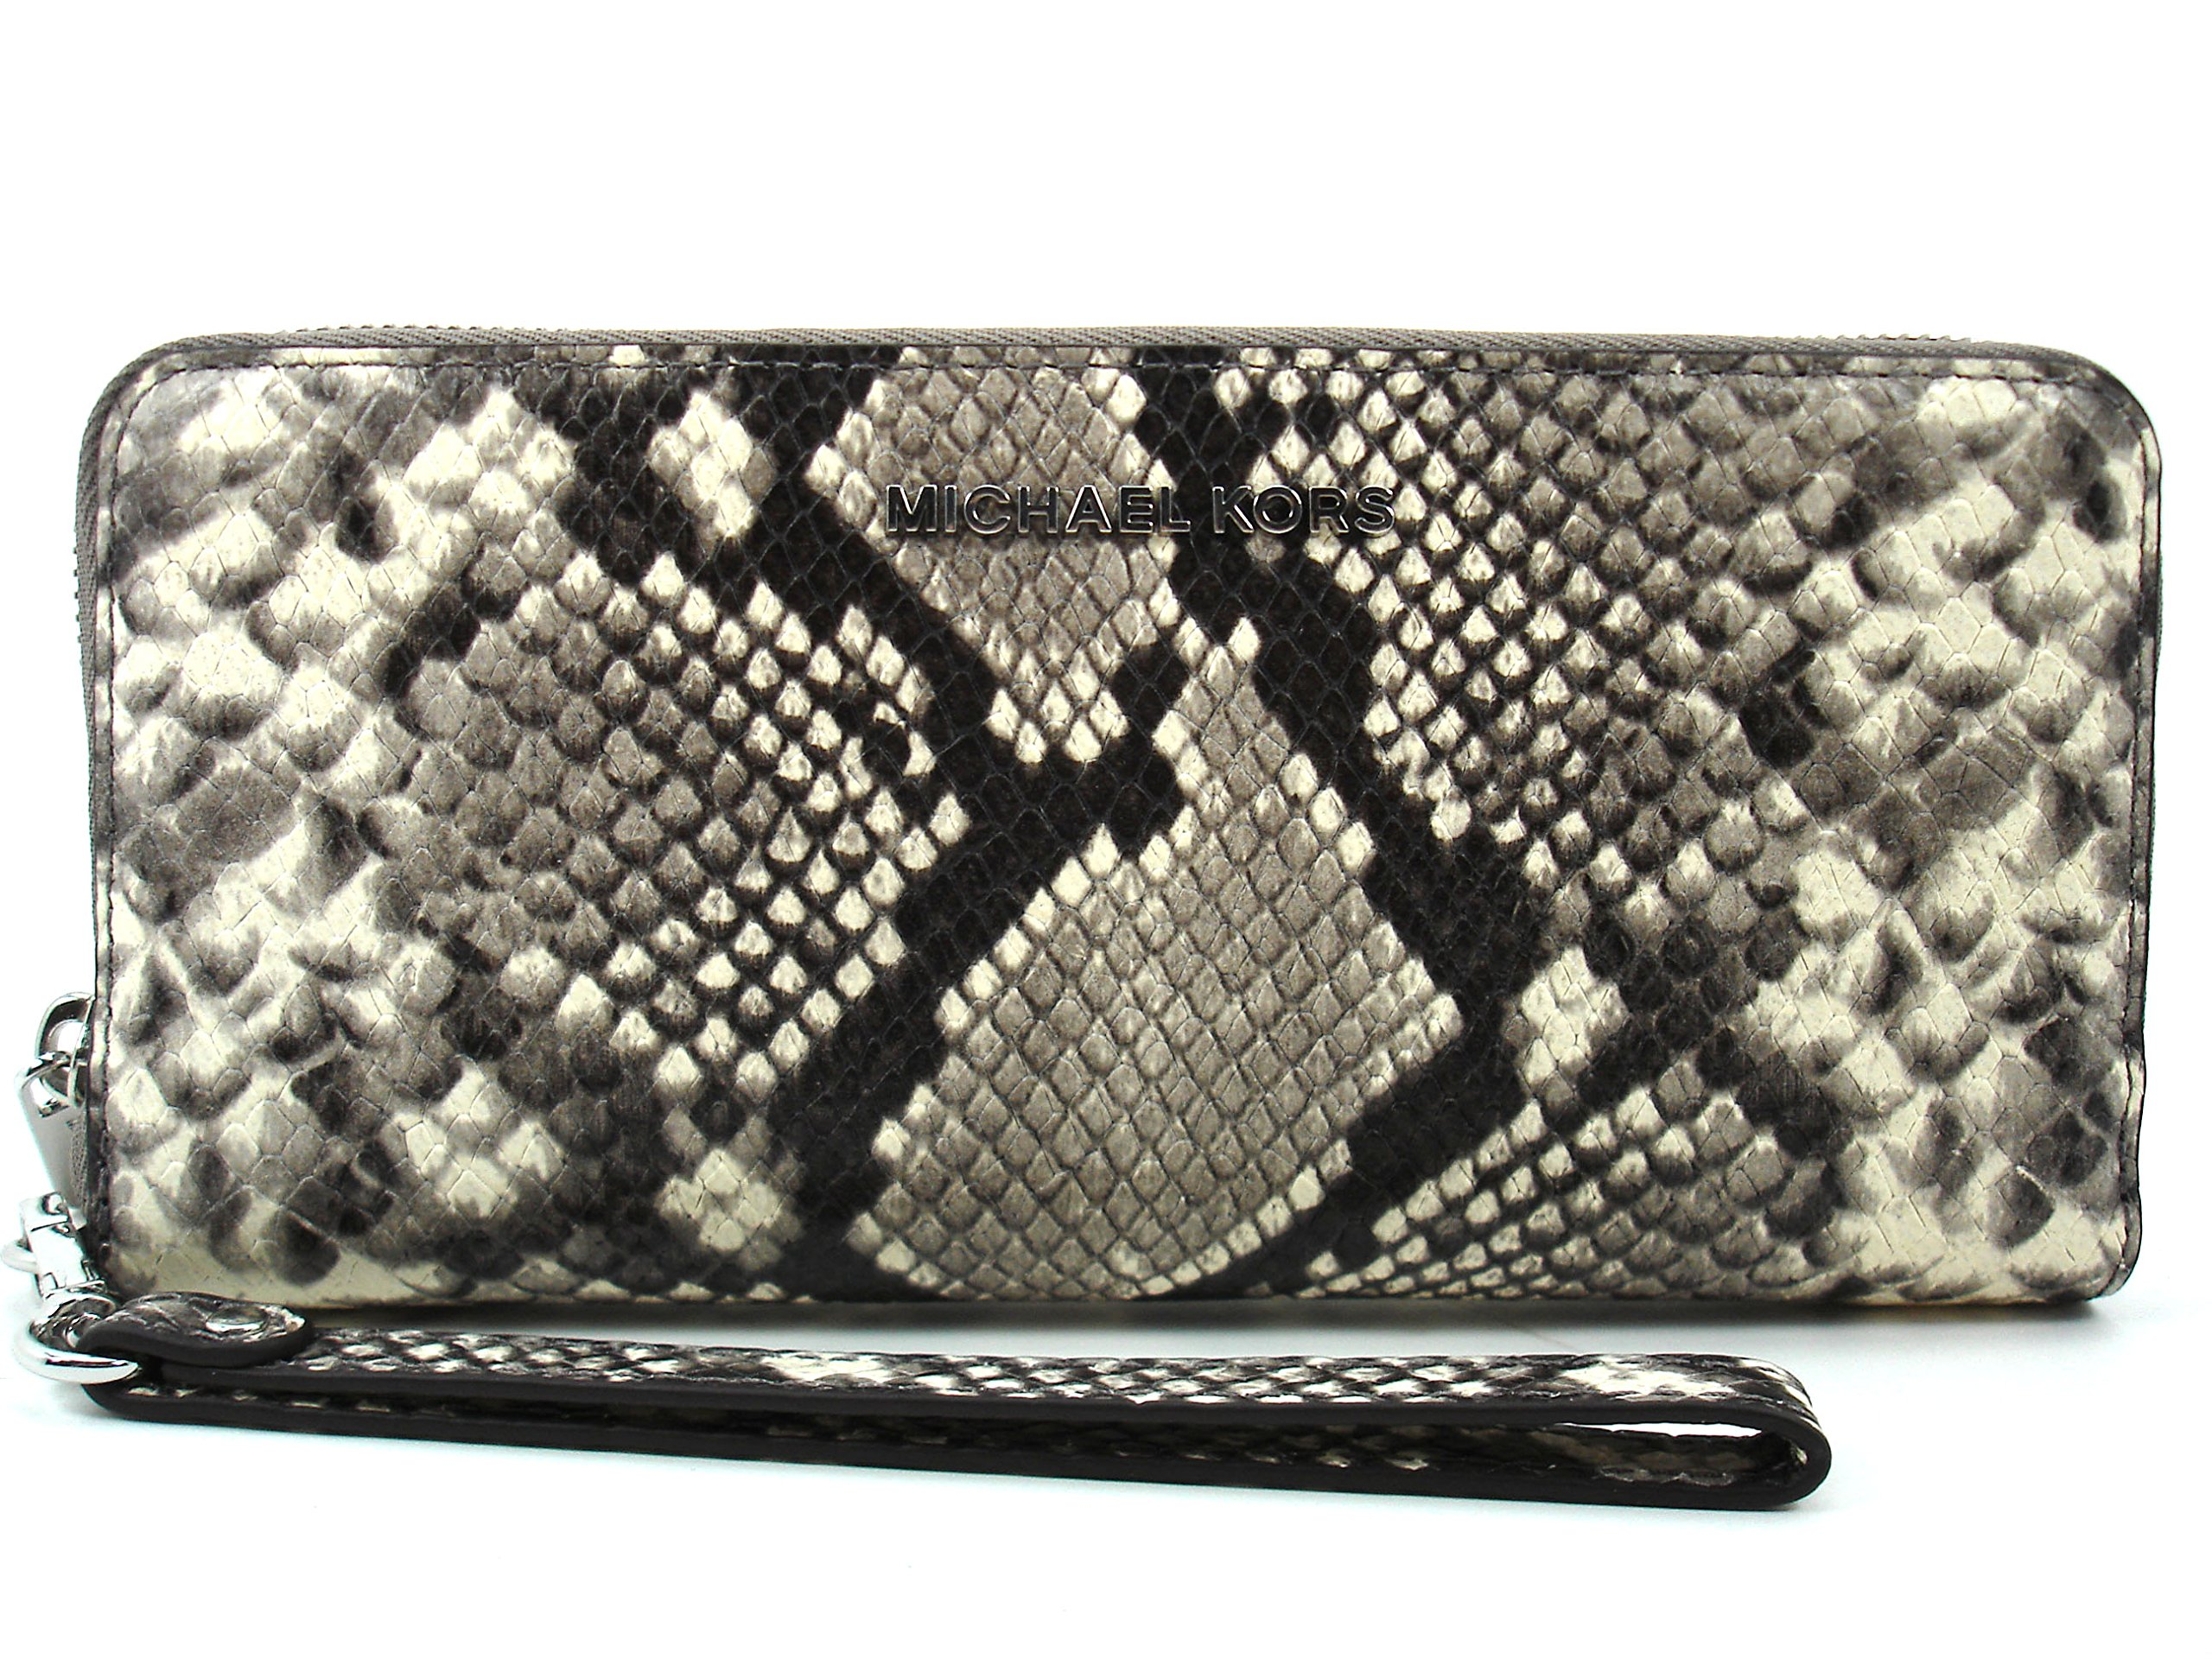 Michael Kors Women's Jet Set Travel Embossed Leather Wristlet - Natural by Michael Kors (Image #1)